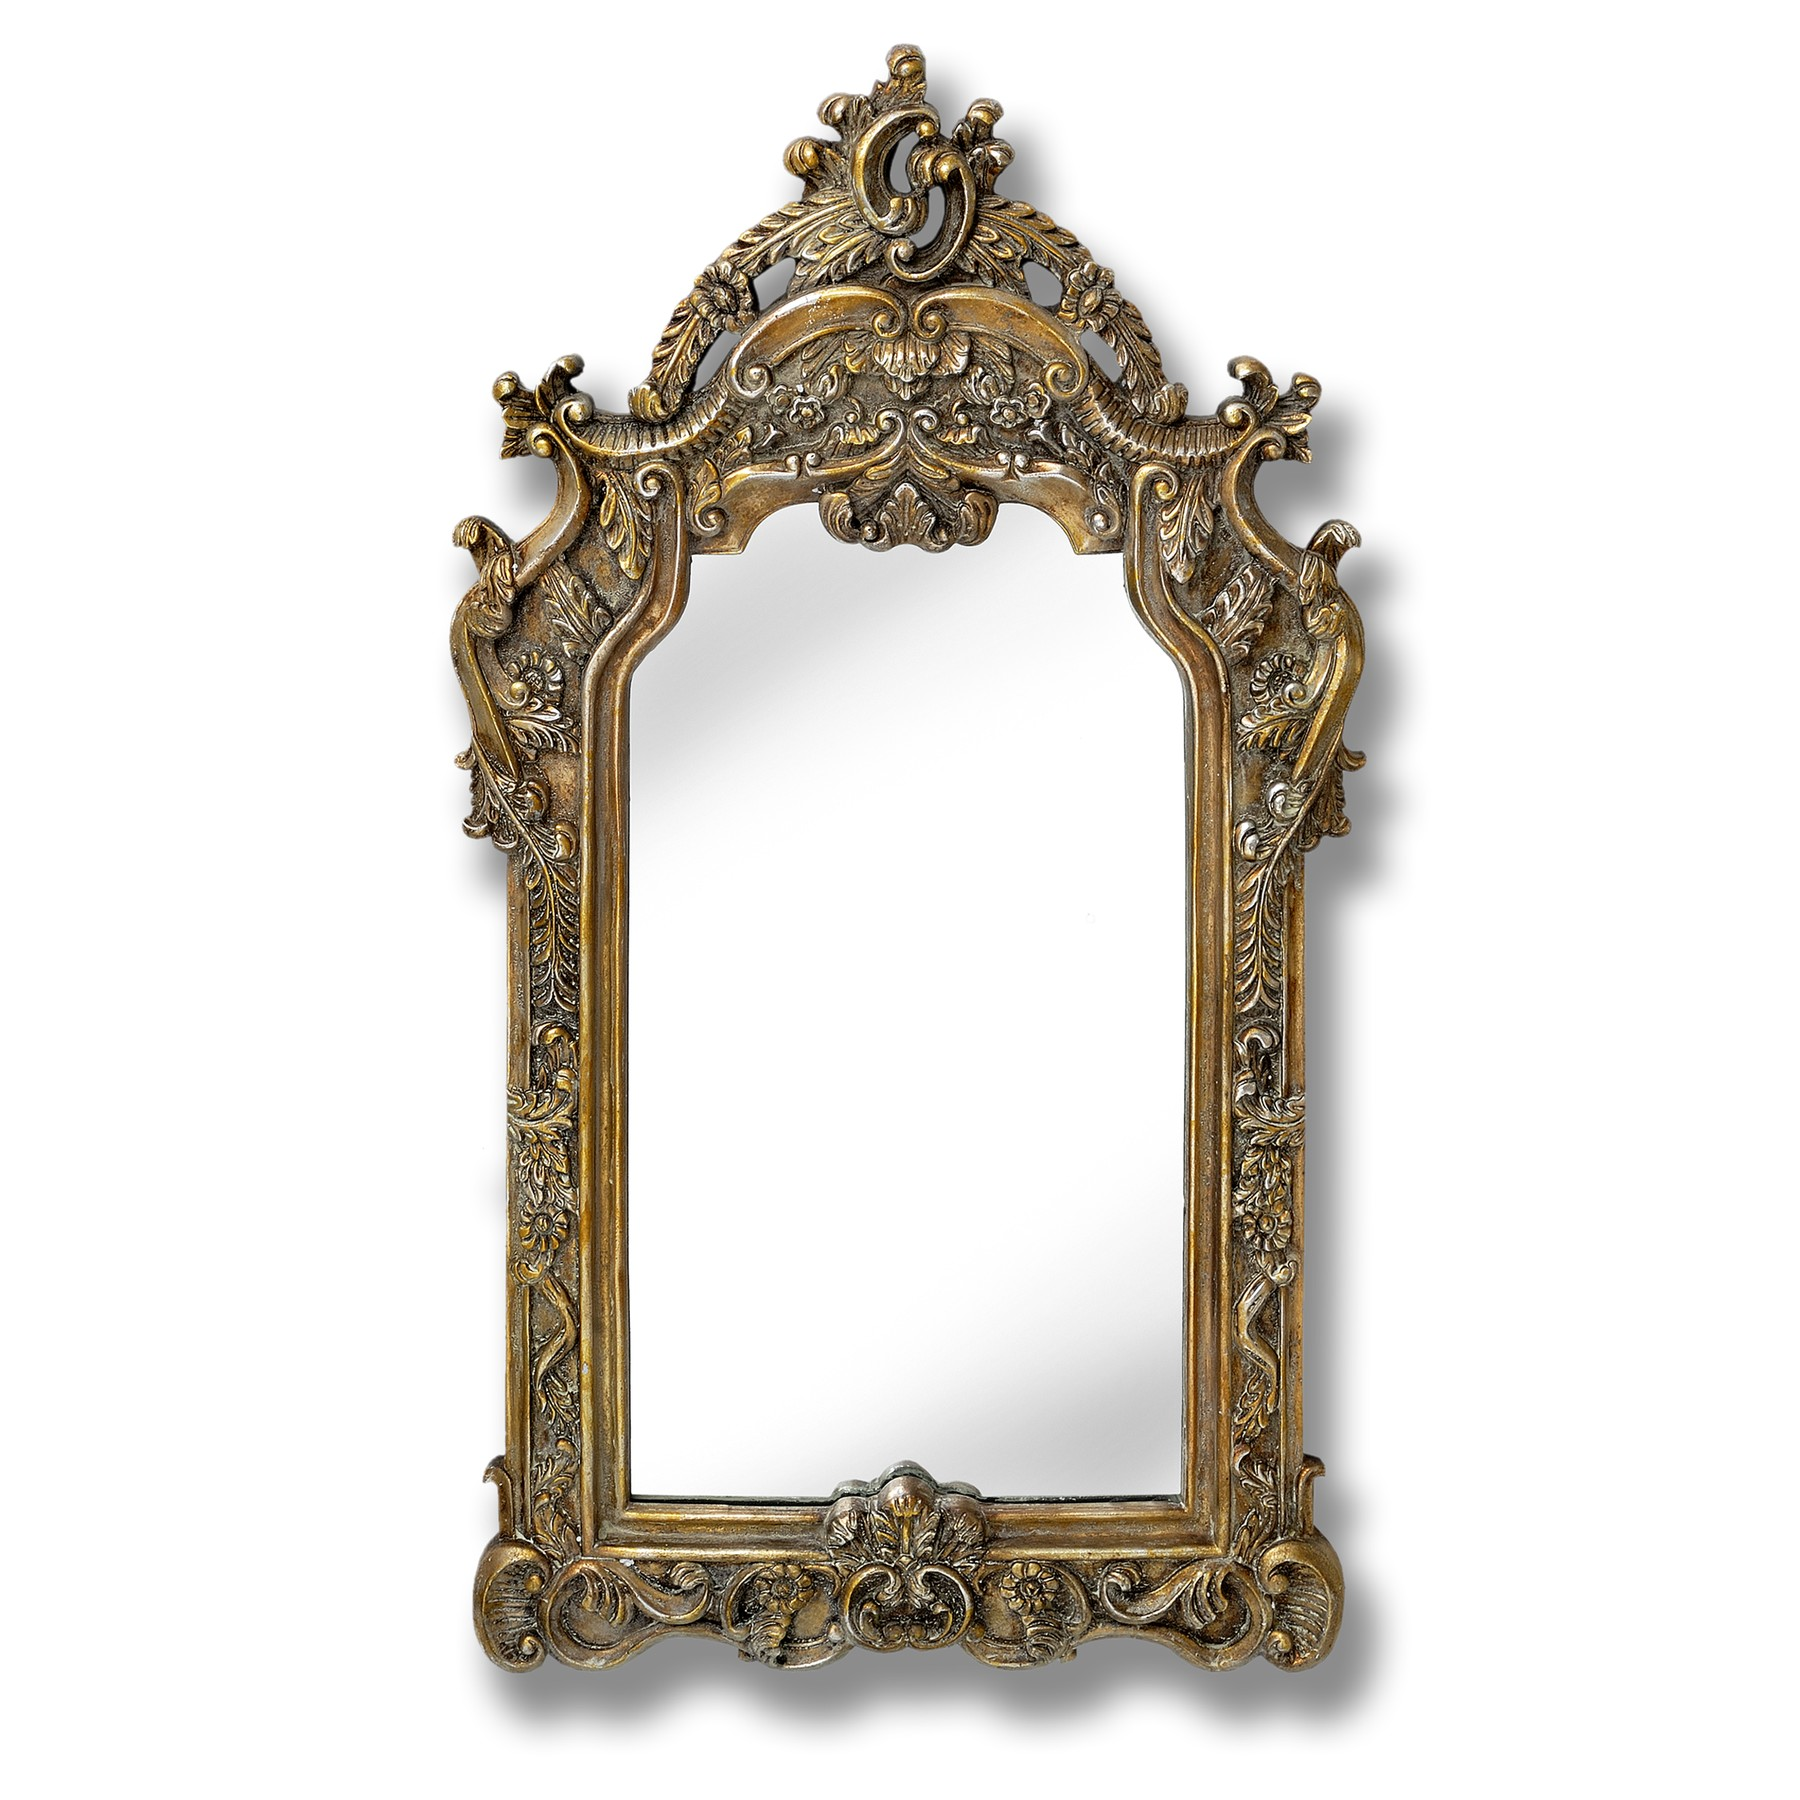 Antique mirror wallpaper wallpapersafari for Mirror mirror hd